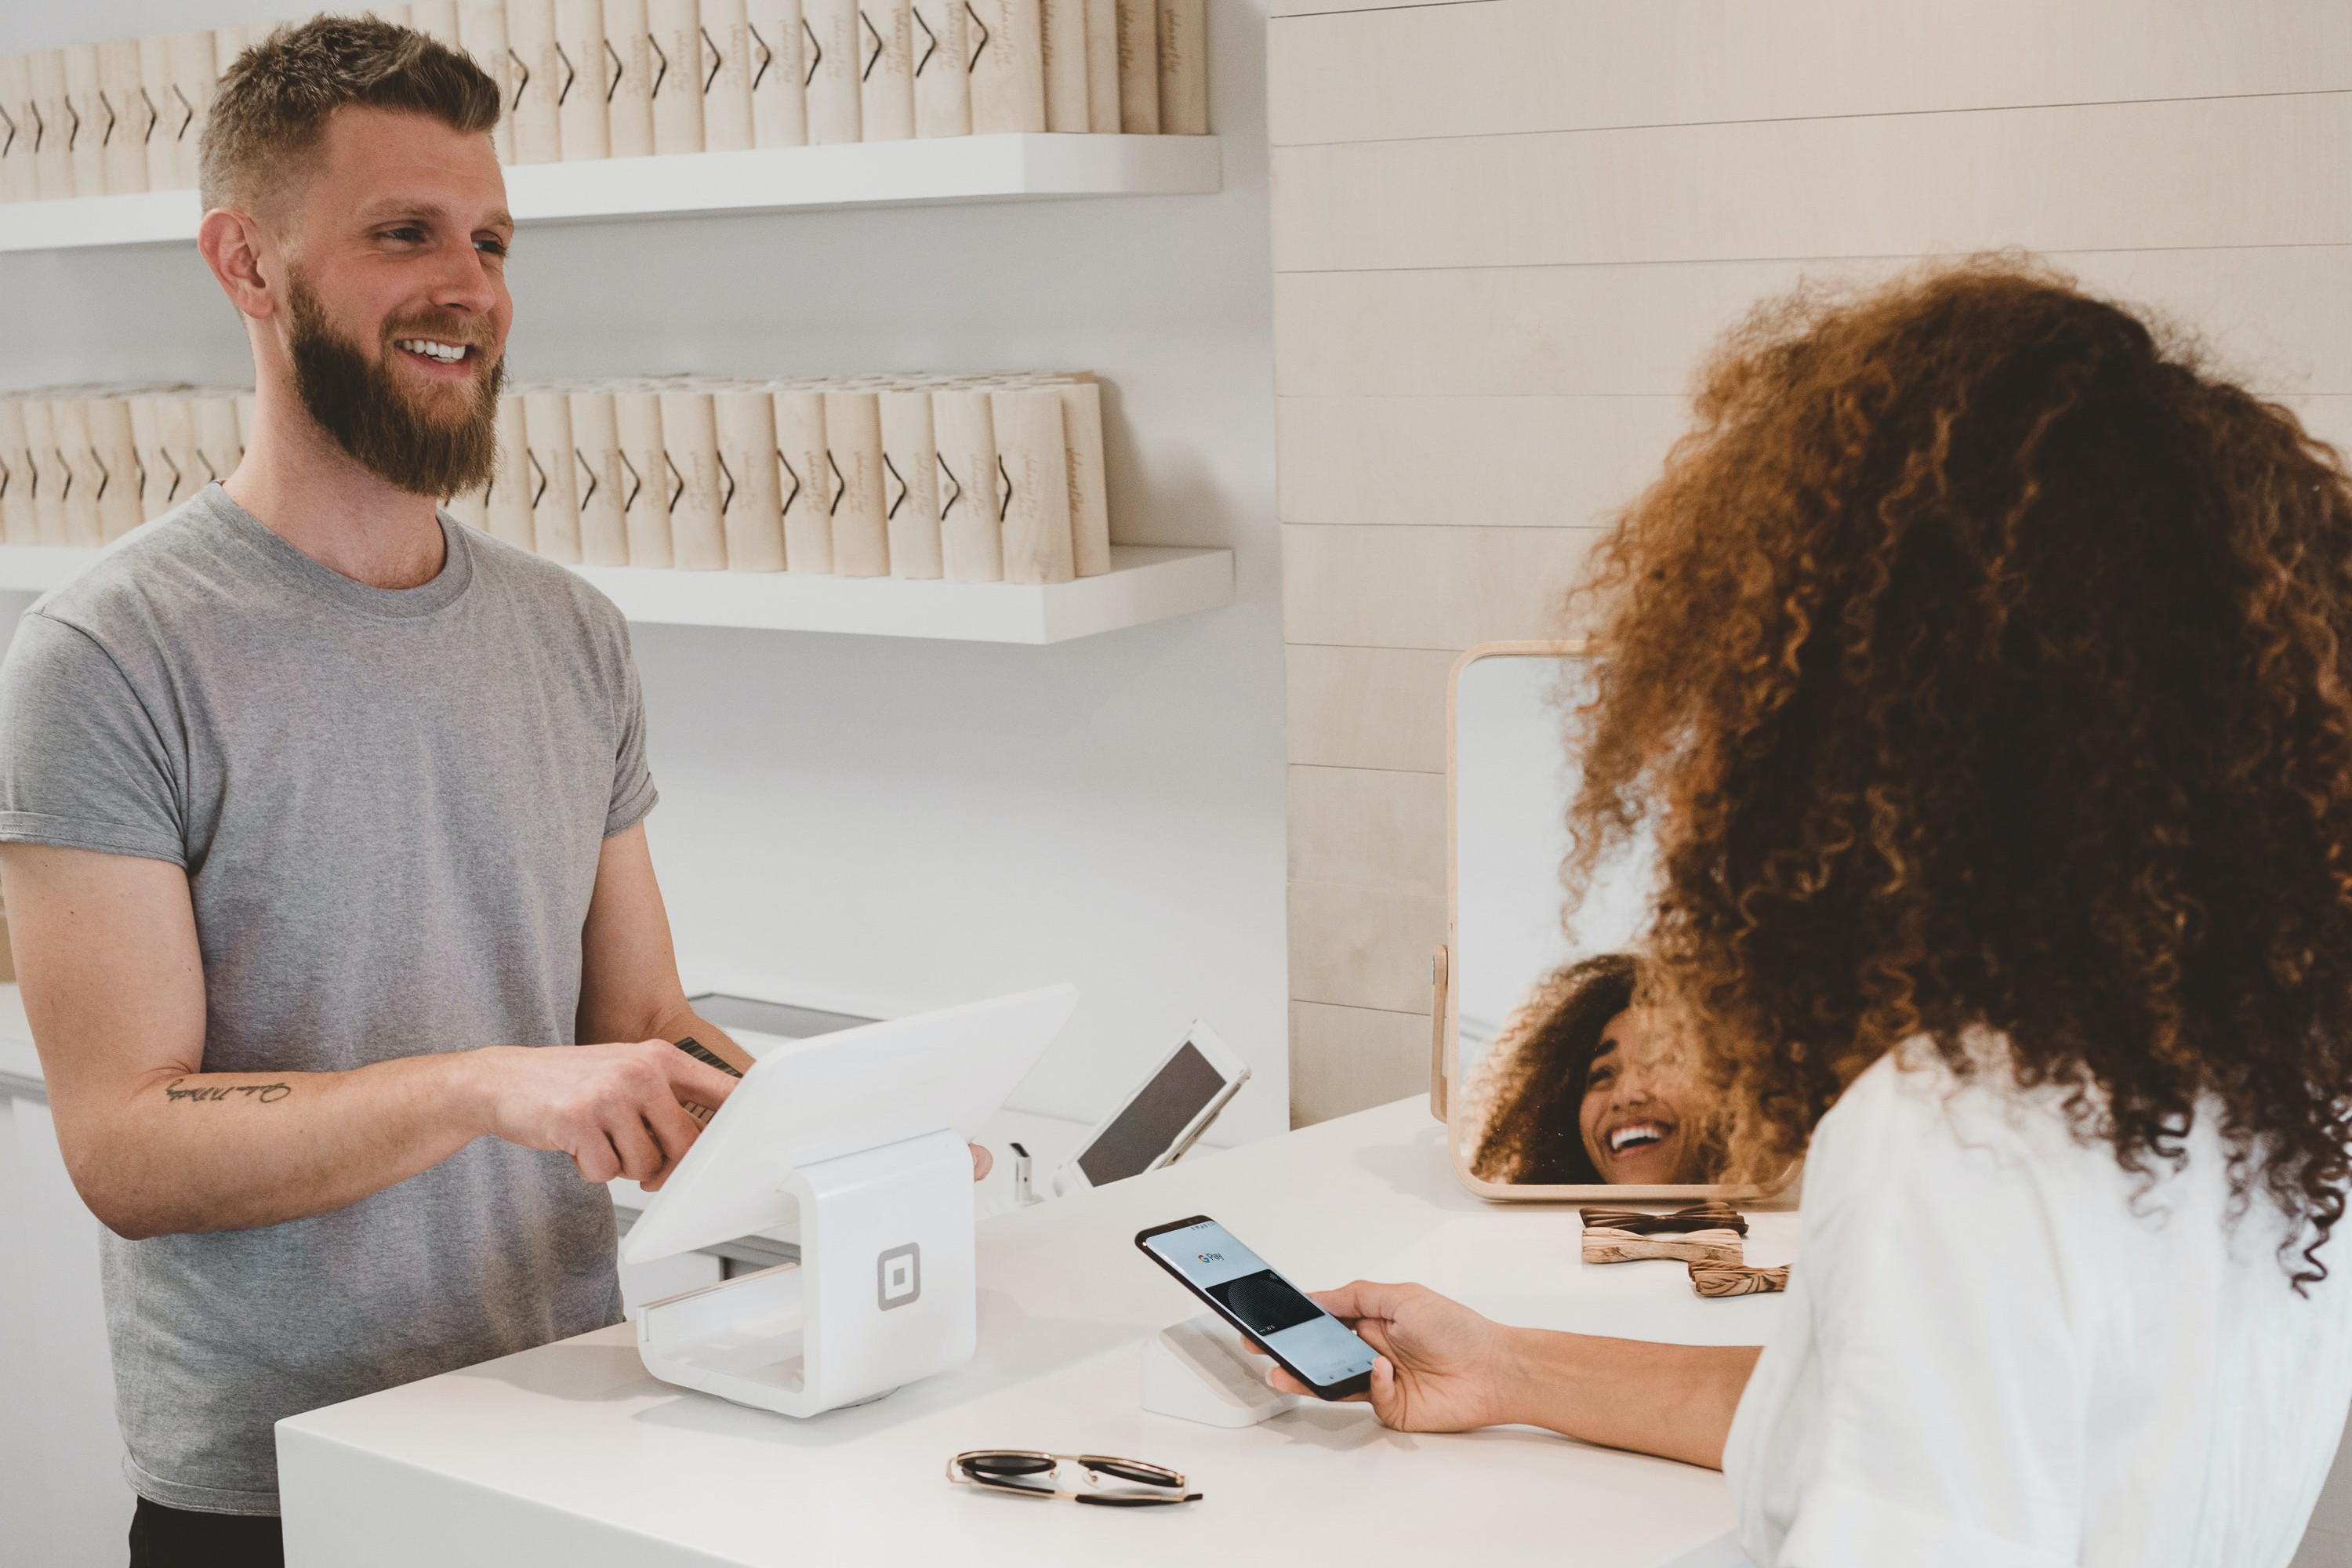 How to give good customer service: 7 tips that'll